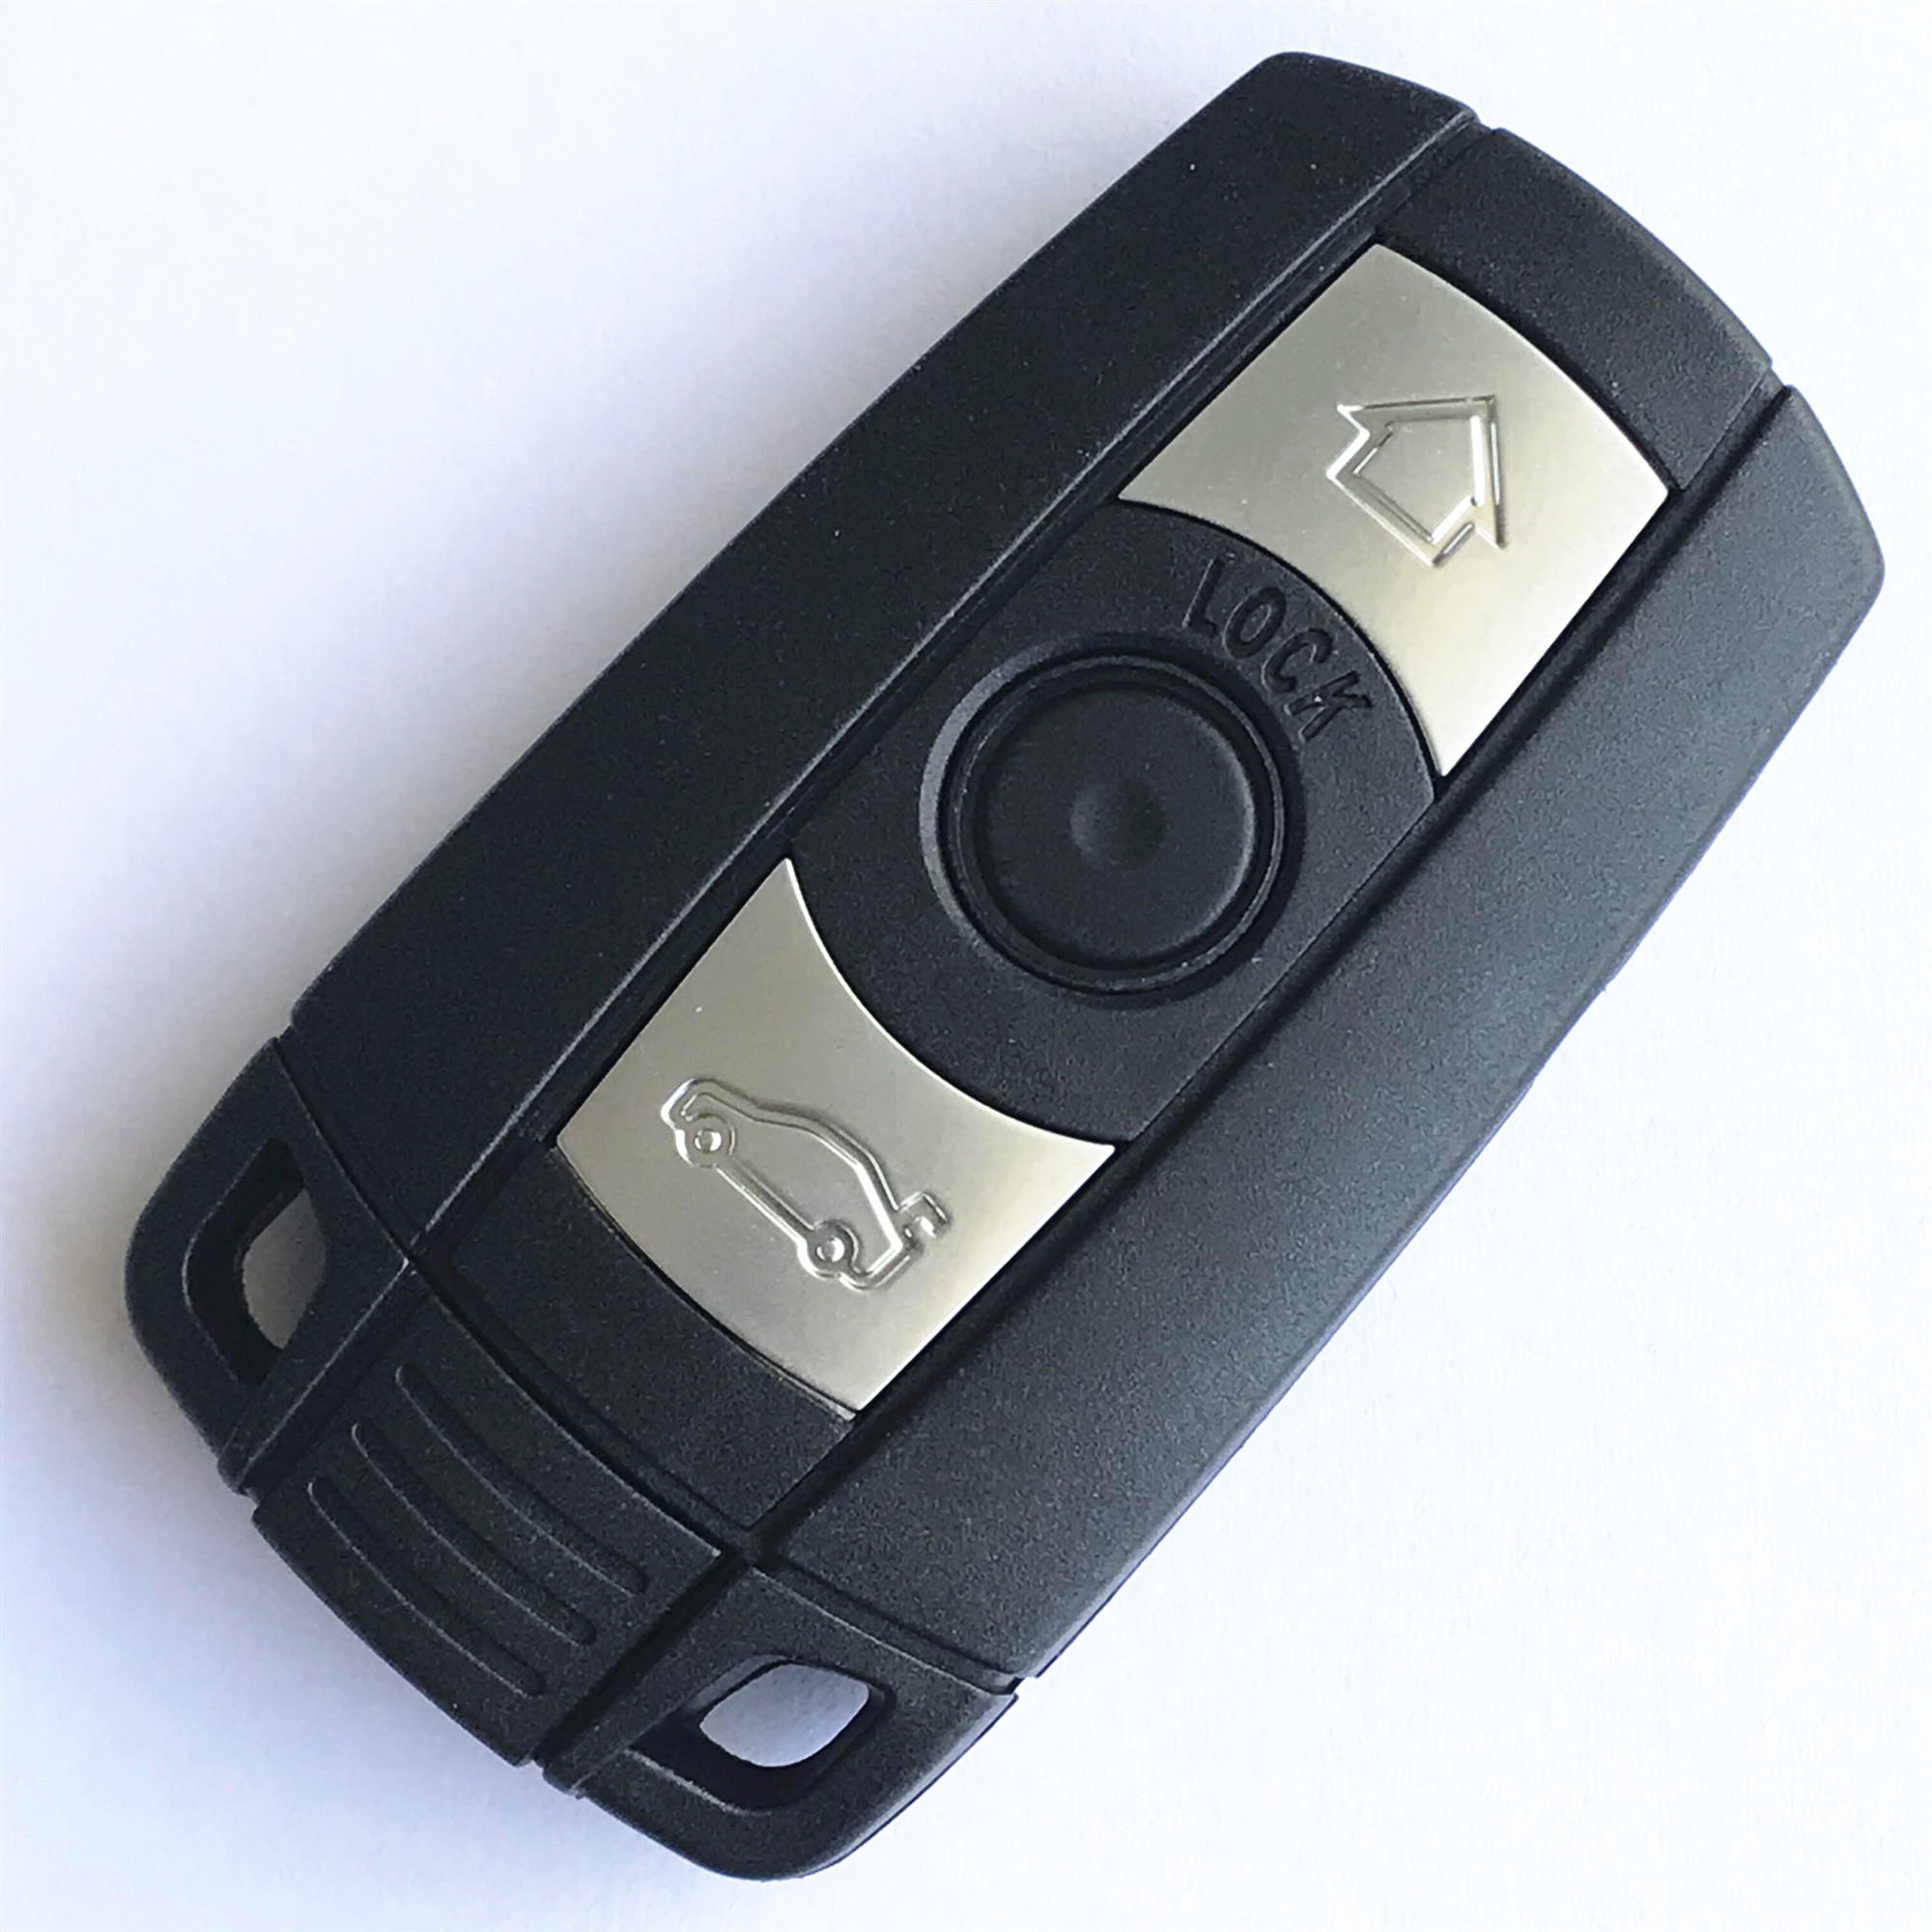 Remote Key for 2004 ~ 2011 BMW 3 / 5 Series - 315 MHz / 434 MHz Changeable Frequency